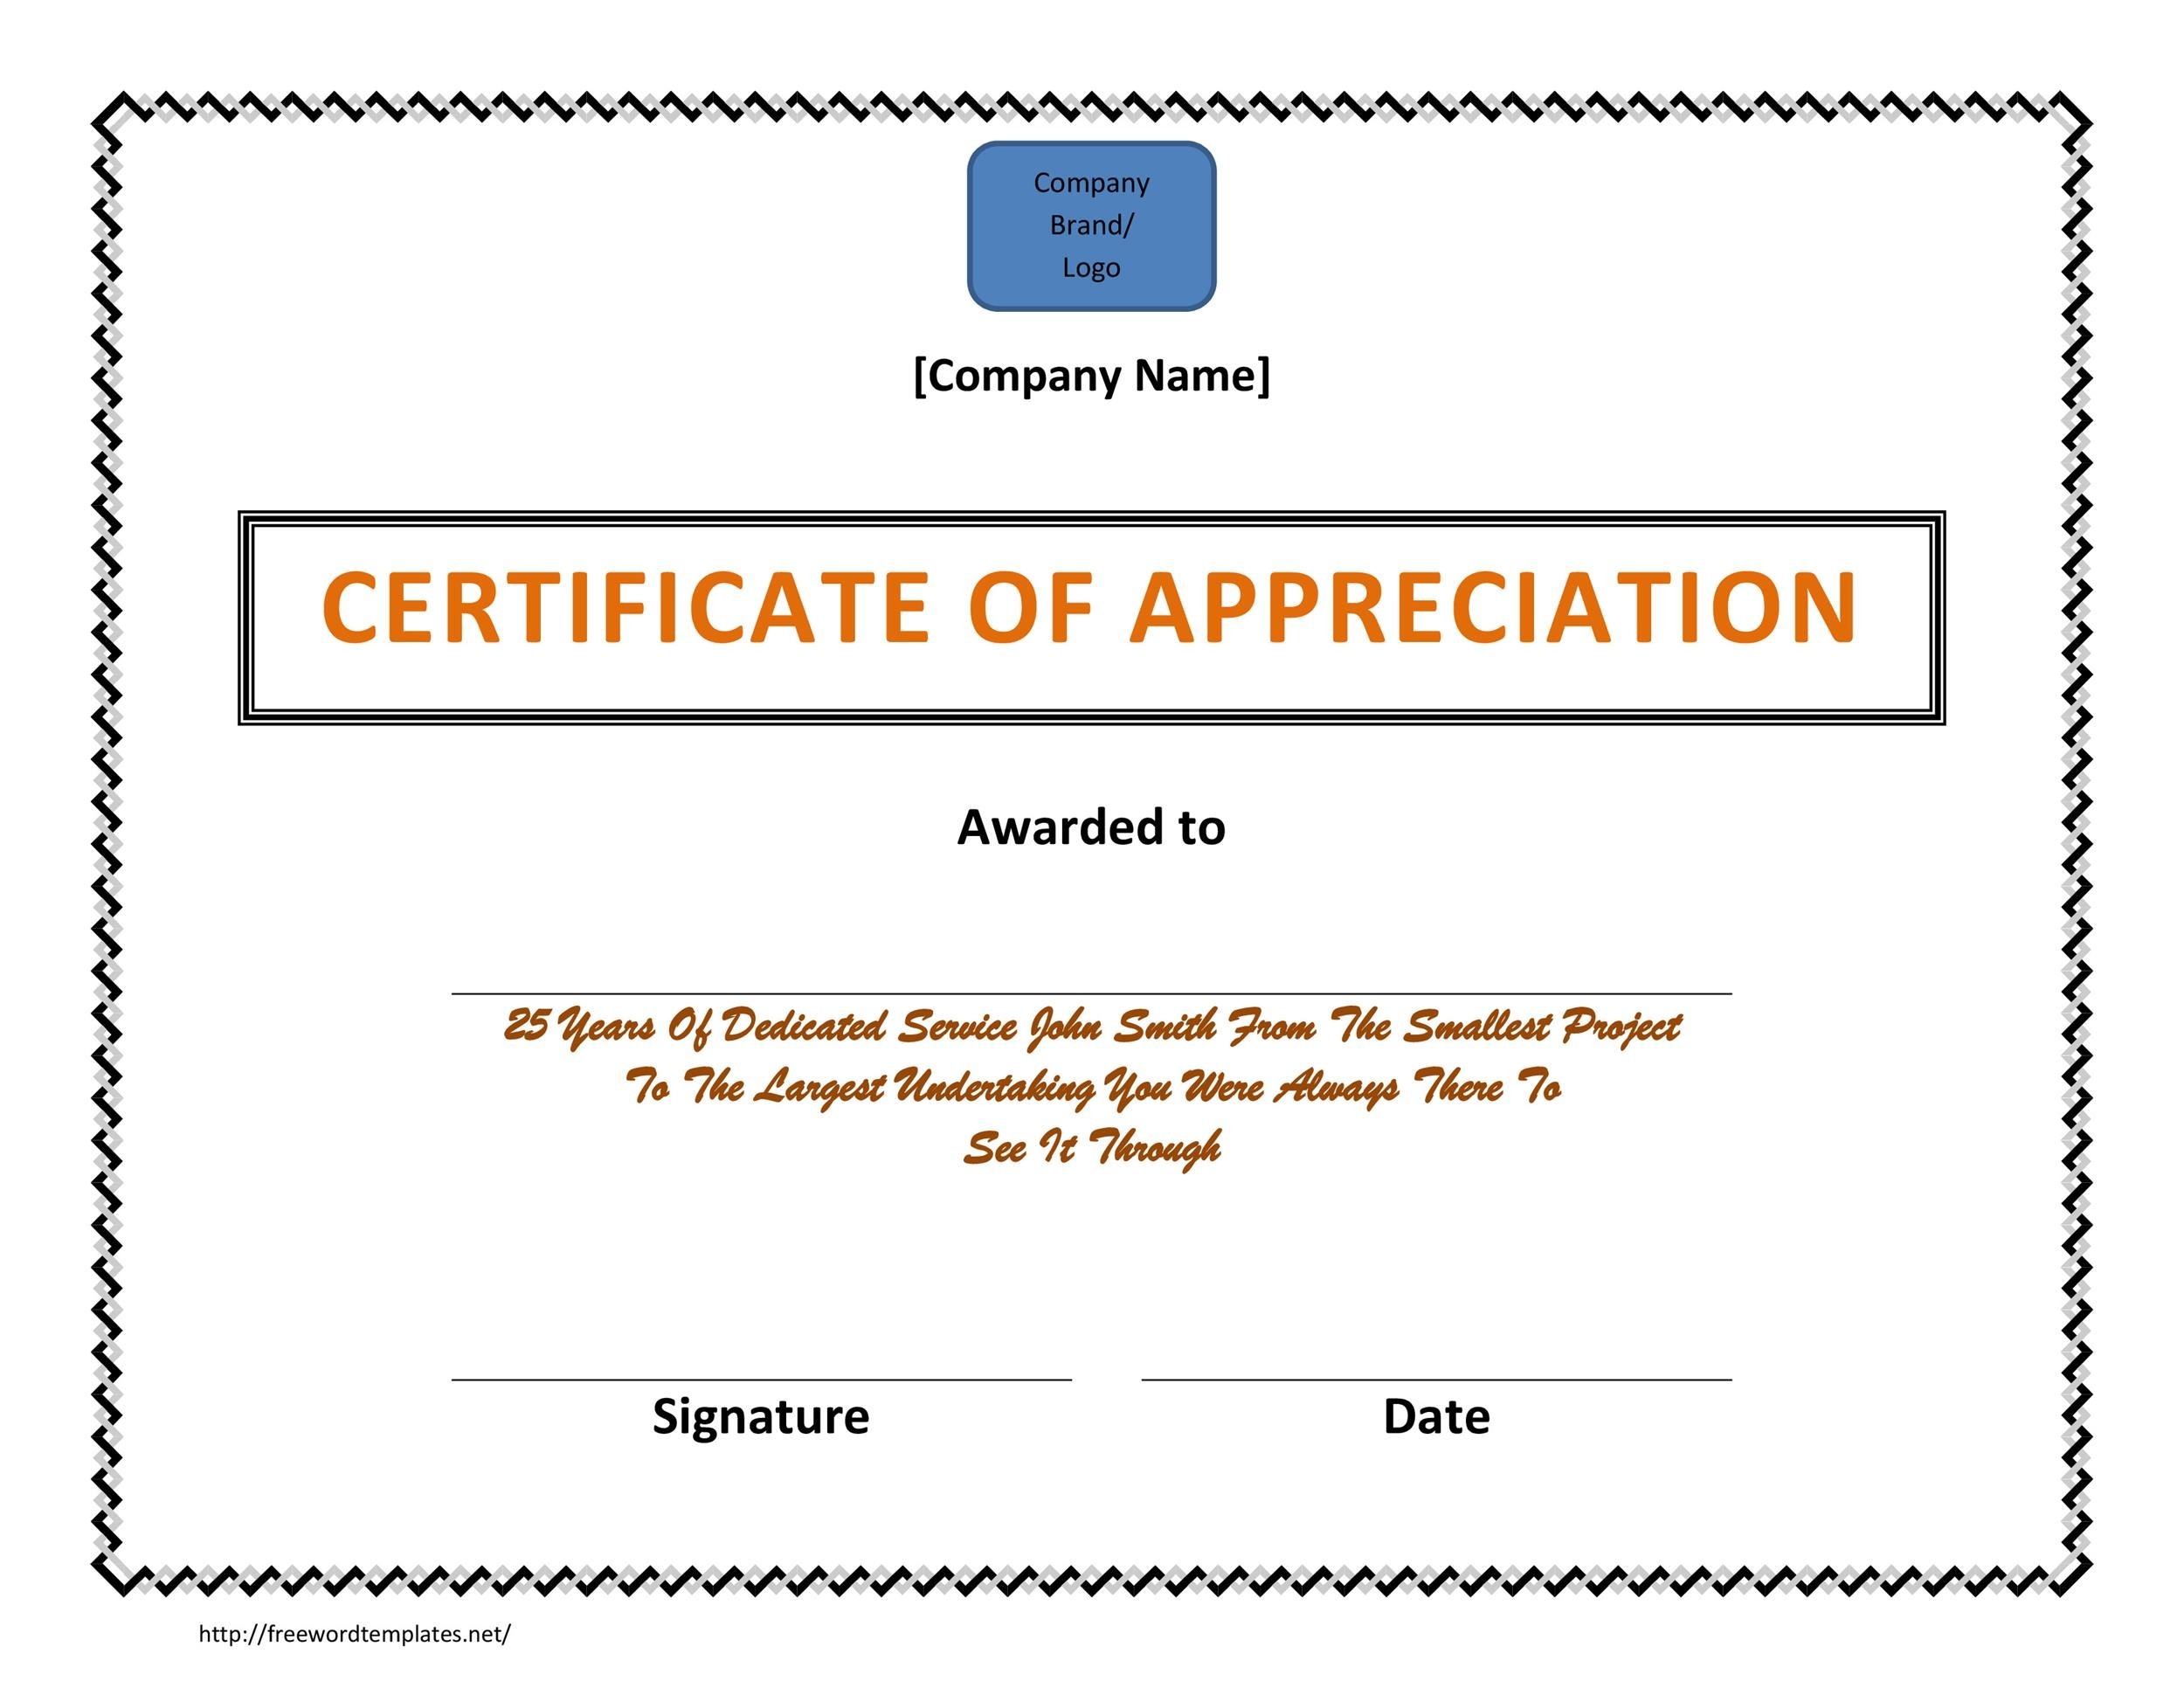 free certificate of appreciation 05